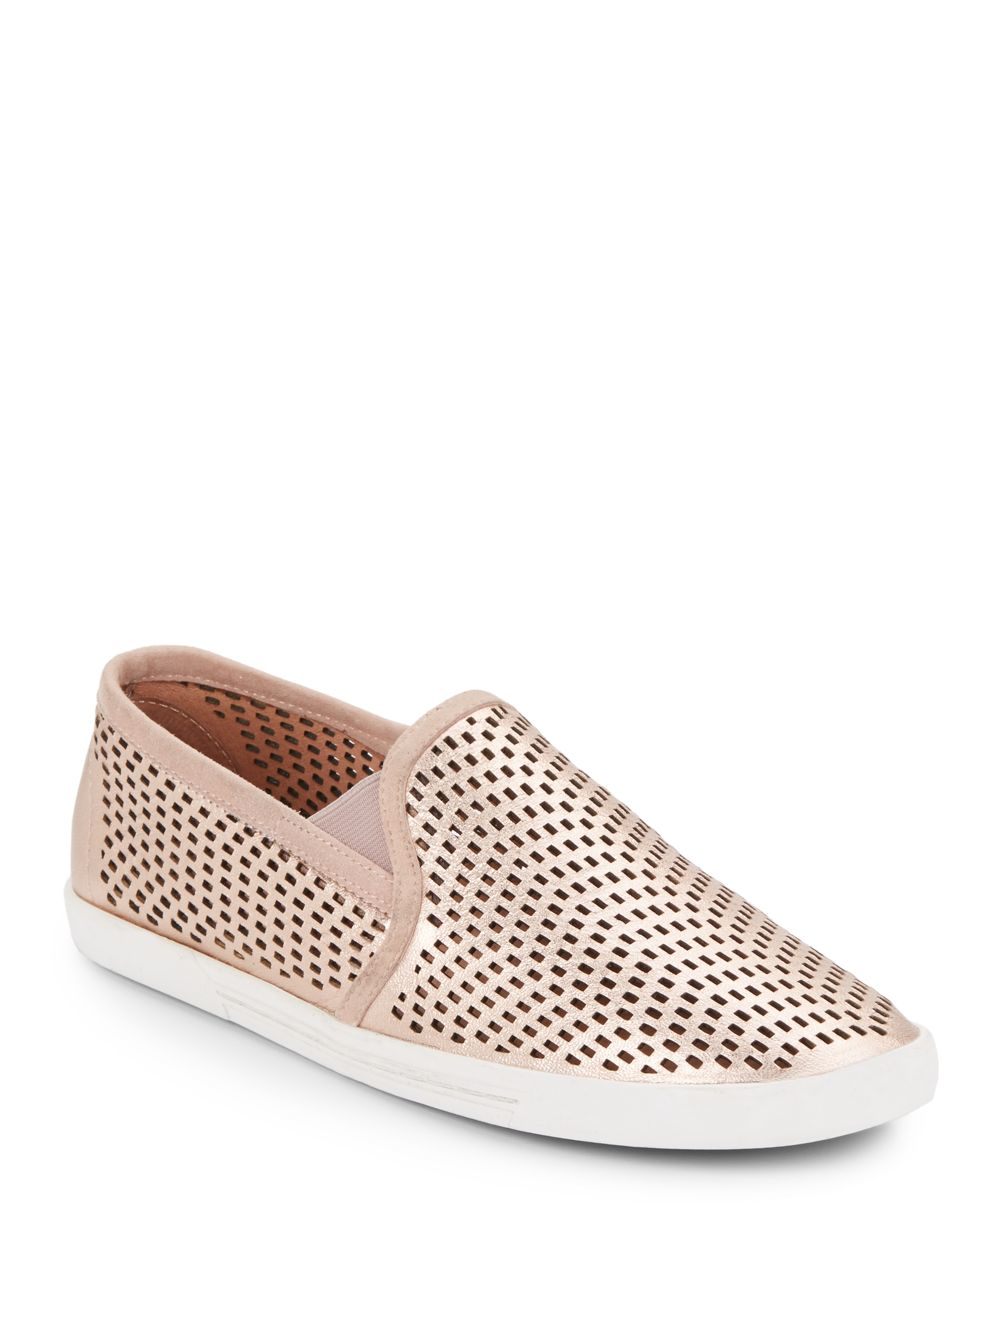 Off Saks Women S Shoes